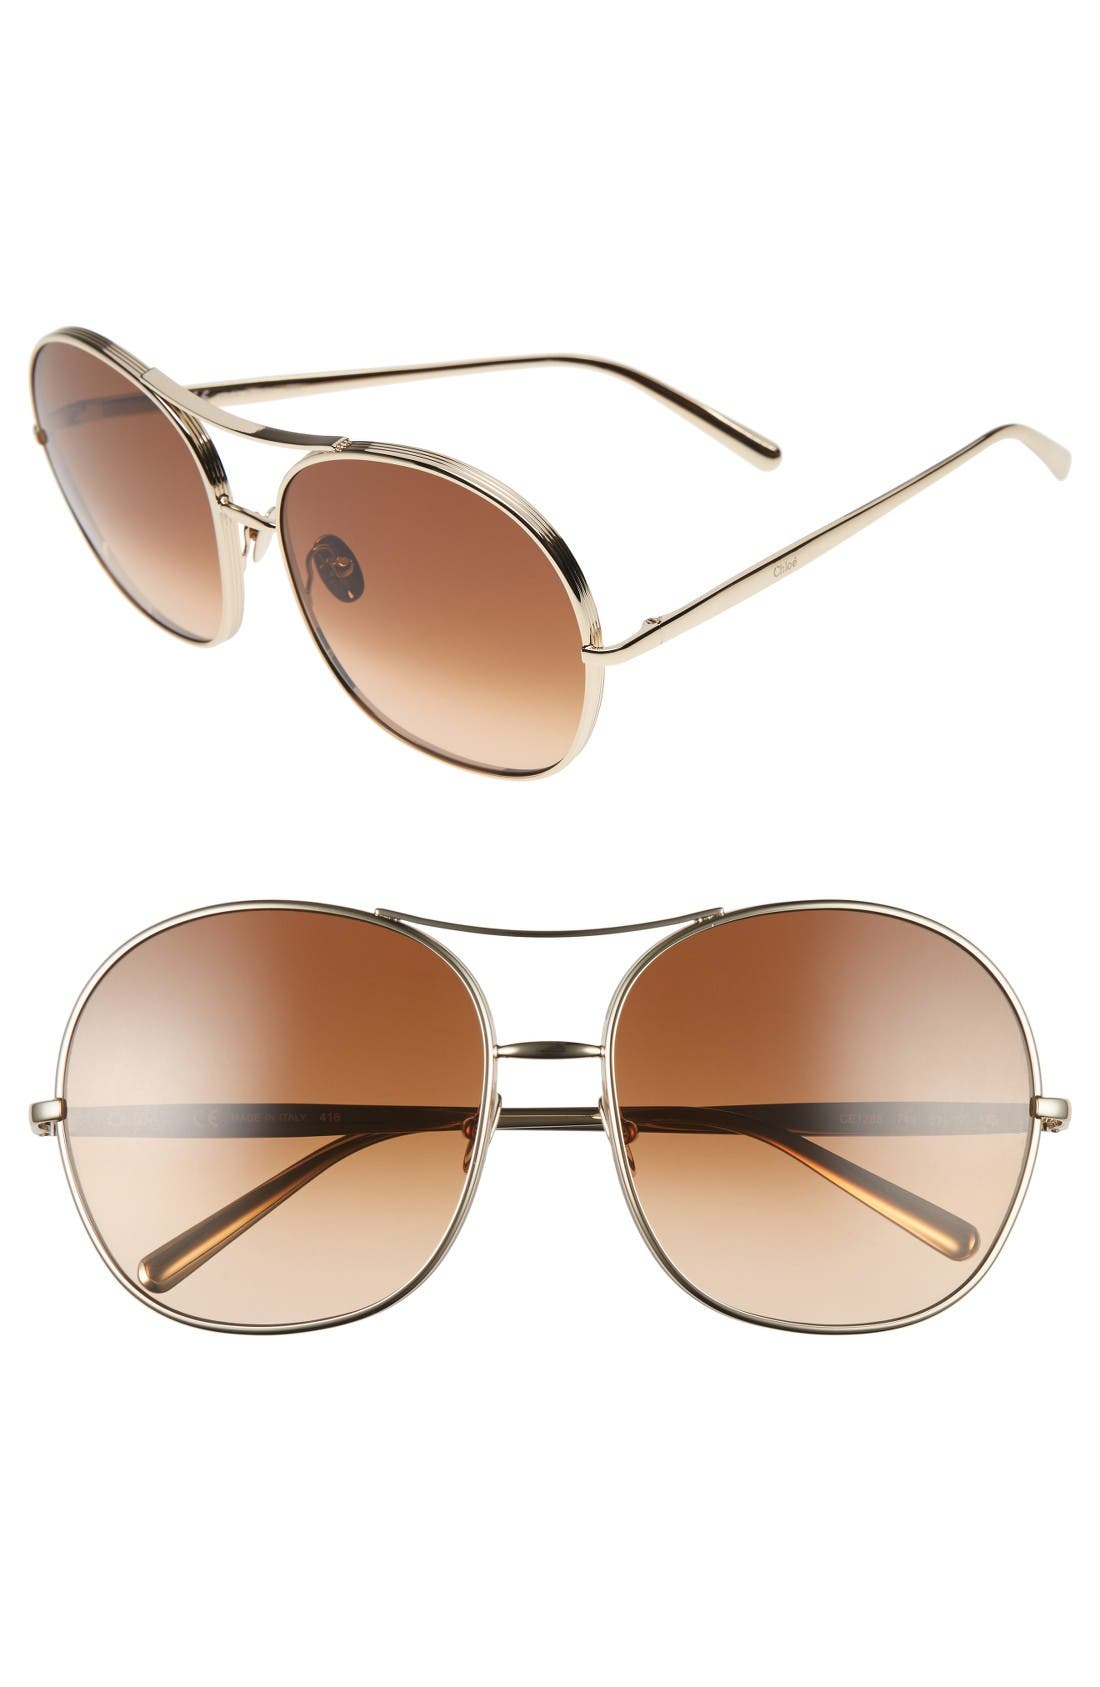 61mm Oversize Aviator Sunglasses,                         Main,                         color, Gold/ Brown